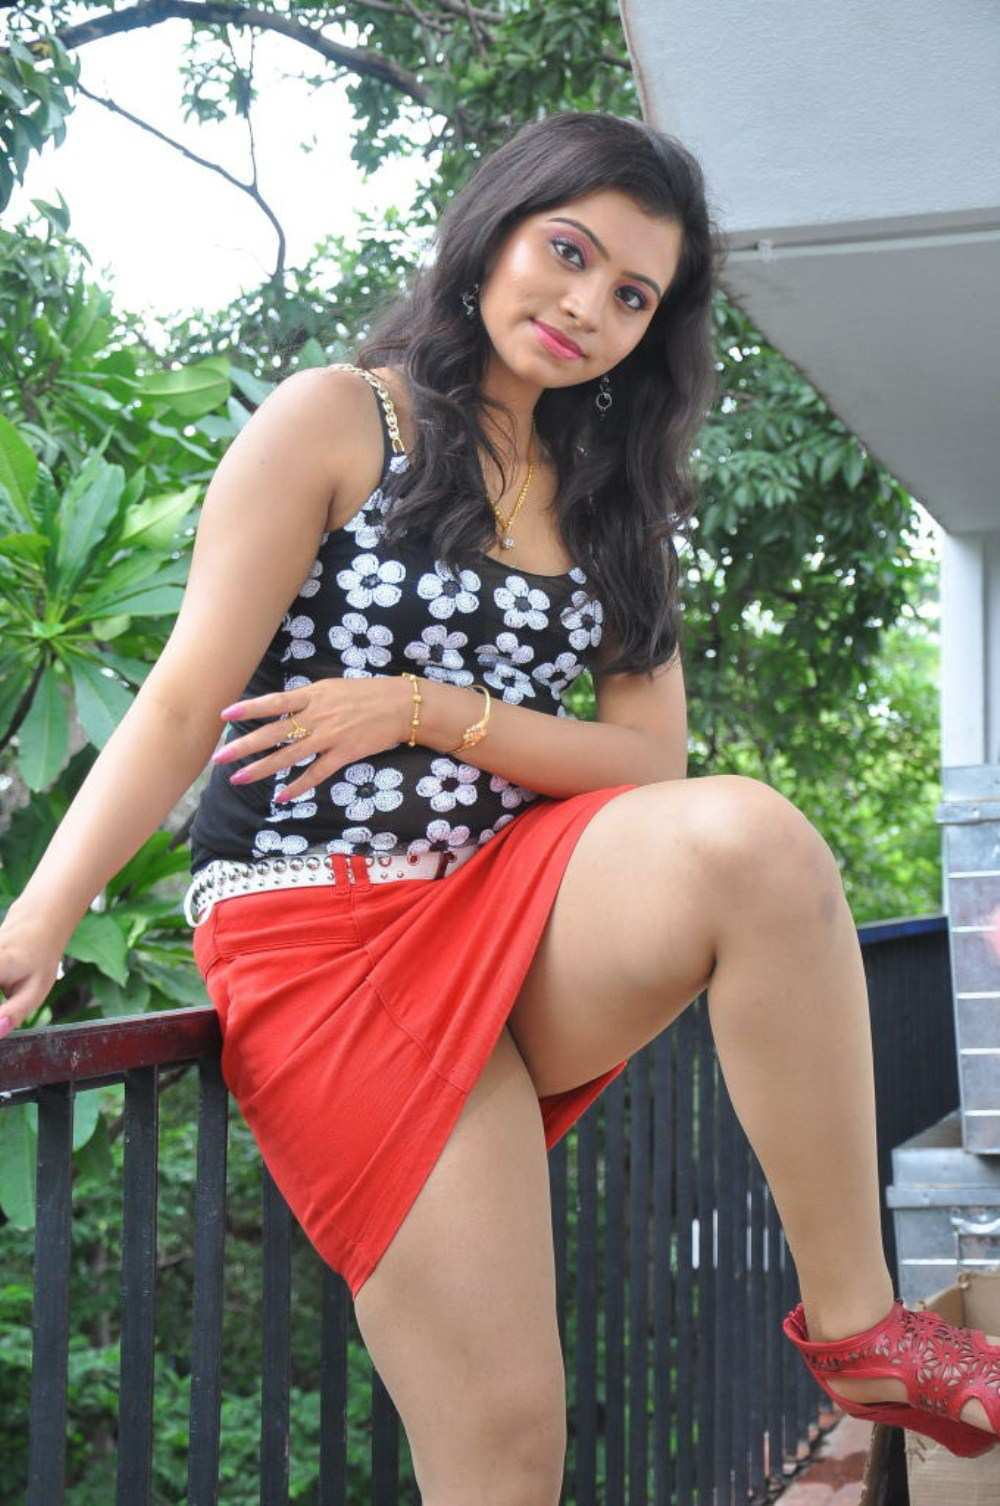 Tollywood Actress Wallpapers - Wallpaper Cave